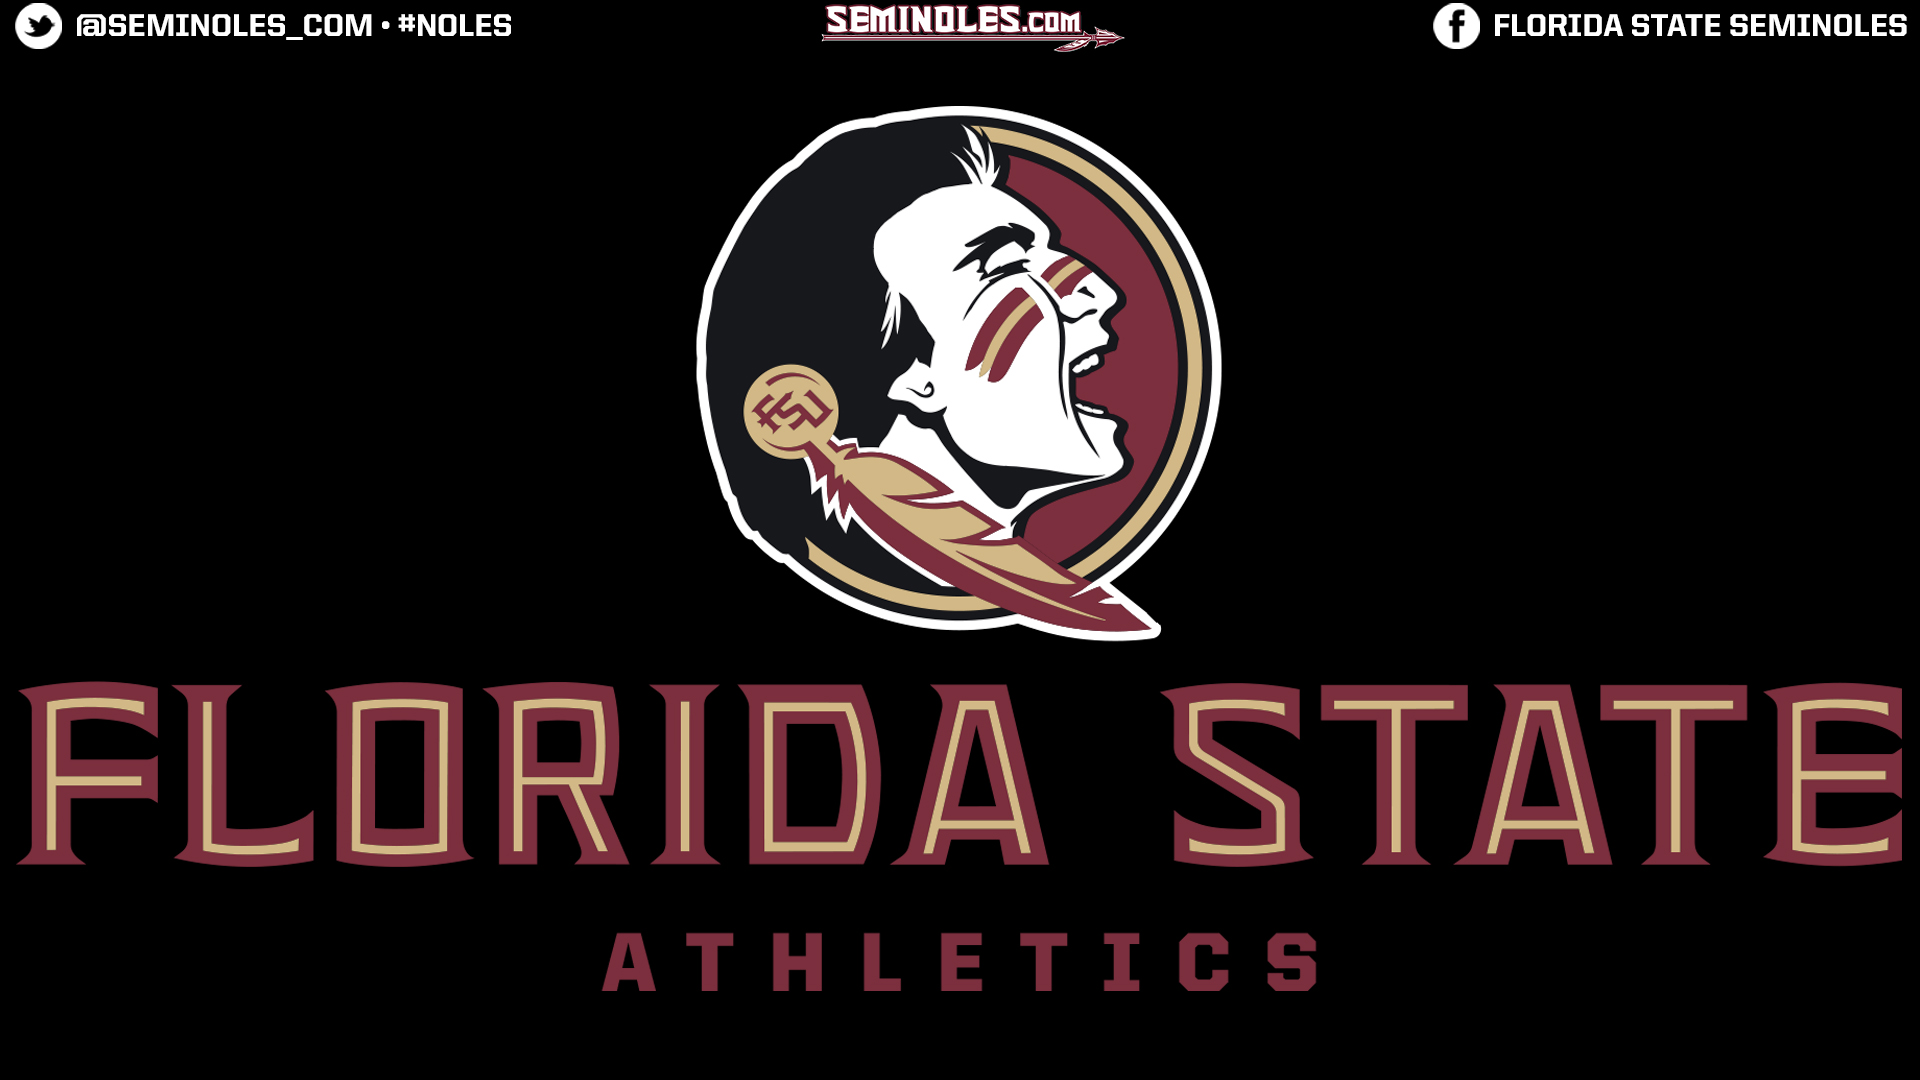 Florida State Football 2013 Wallpaper Wallpapers   florida state 1920x1080